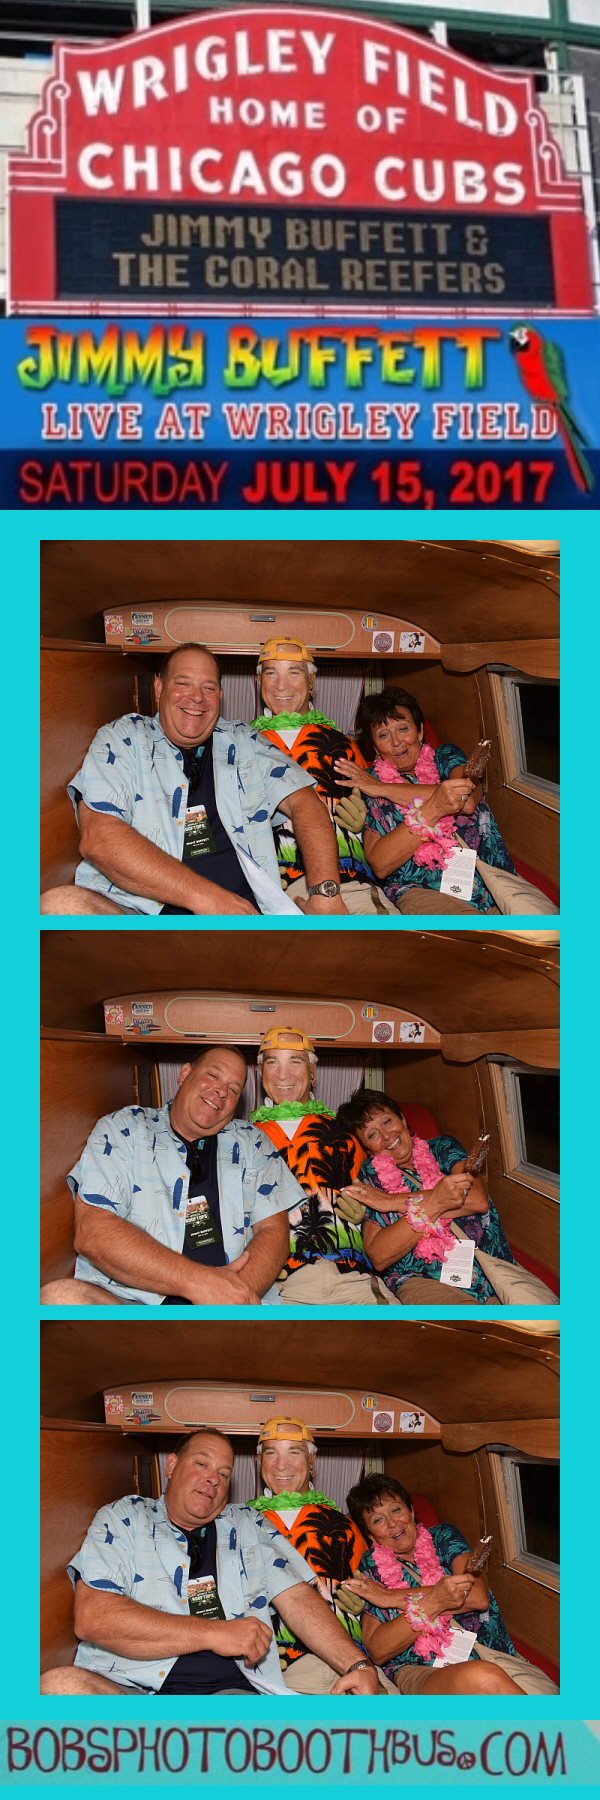 Jimmy Buffett final photo strip graphic_66.jpg